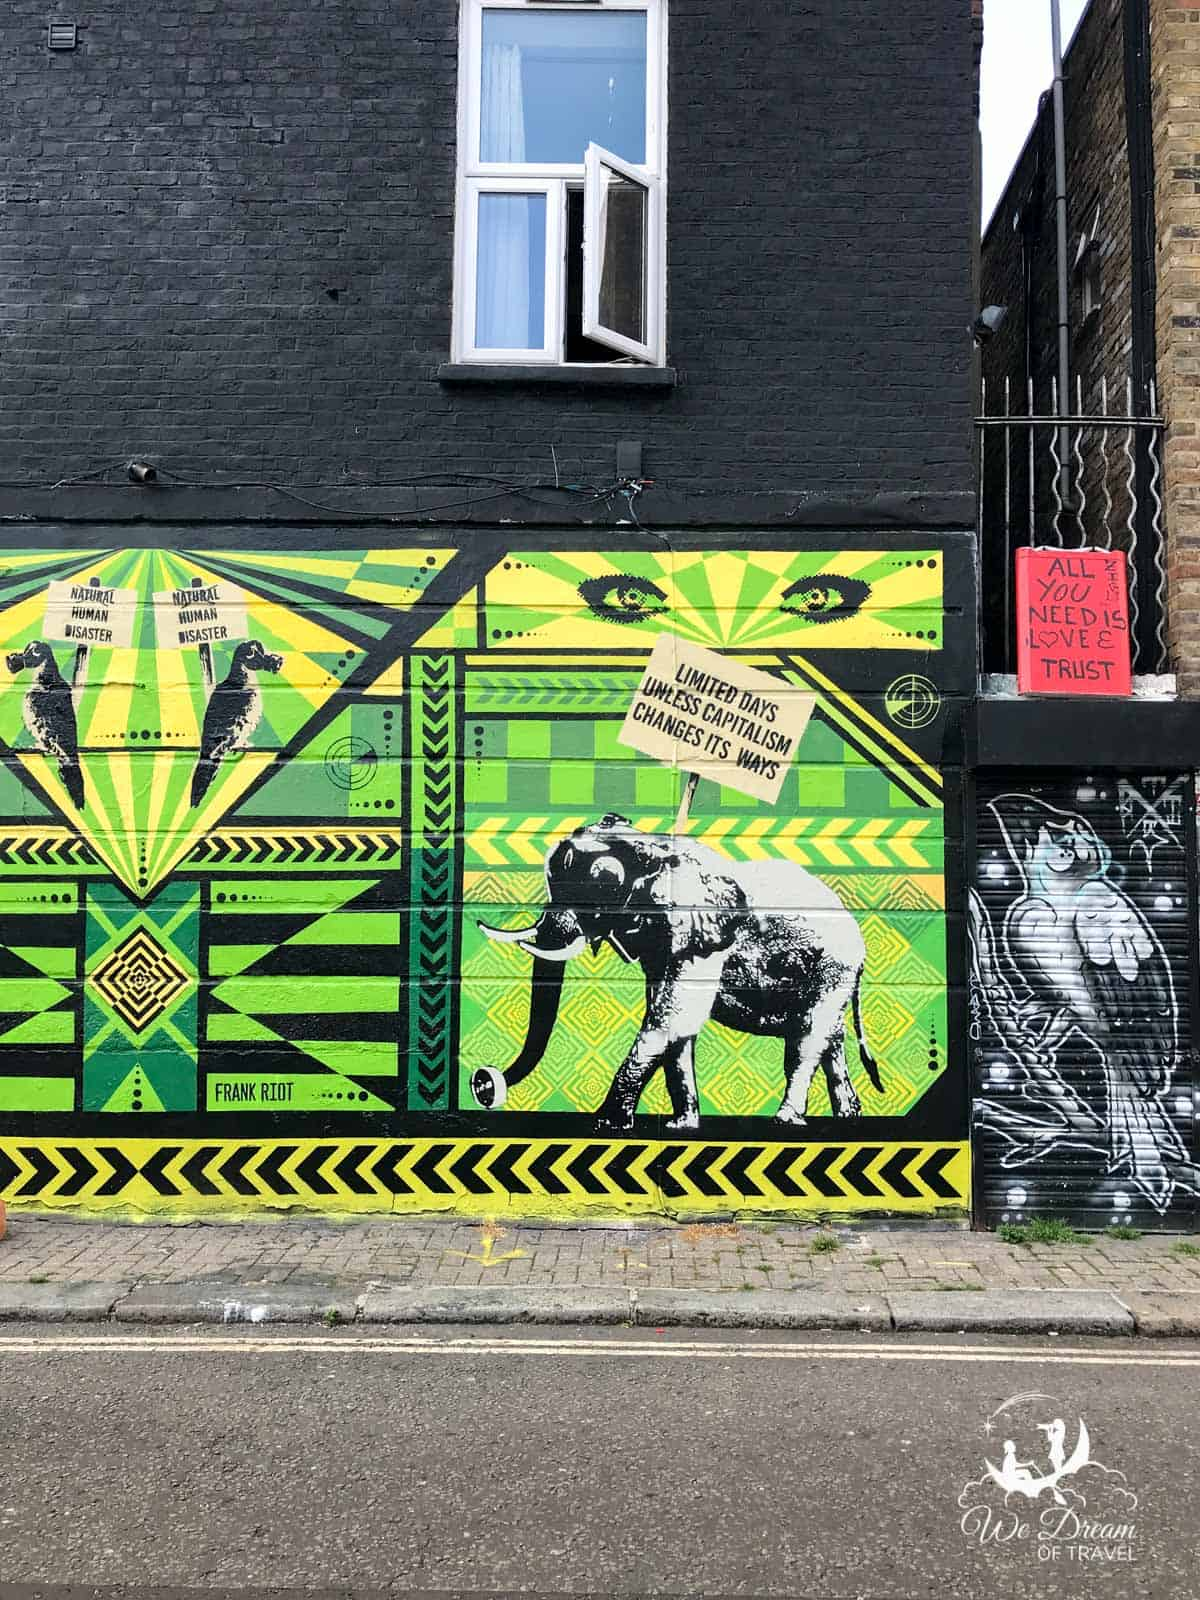 Bright green street art mural featuring an elephant holding a sign and geometric shapes on Stucley Place, Camden